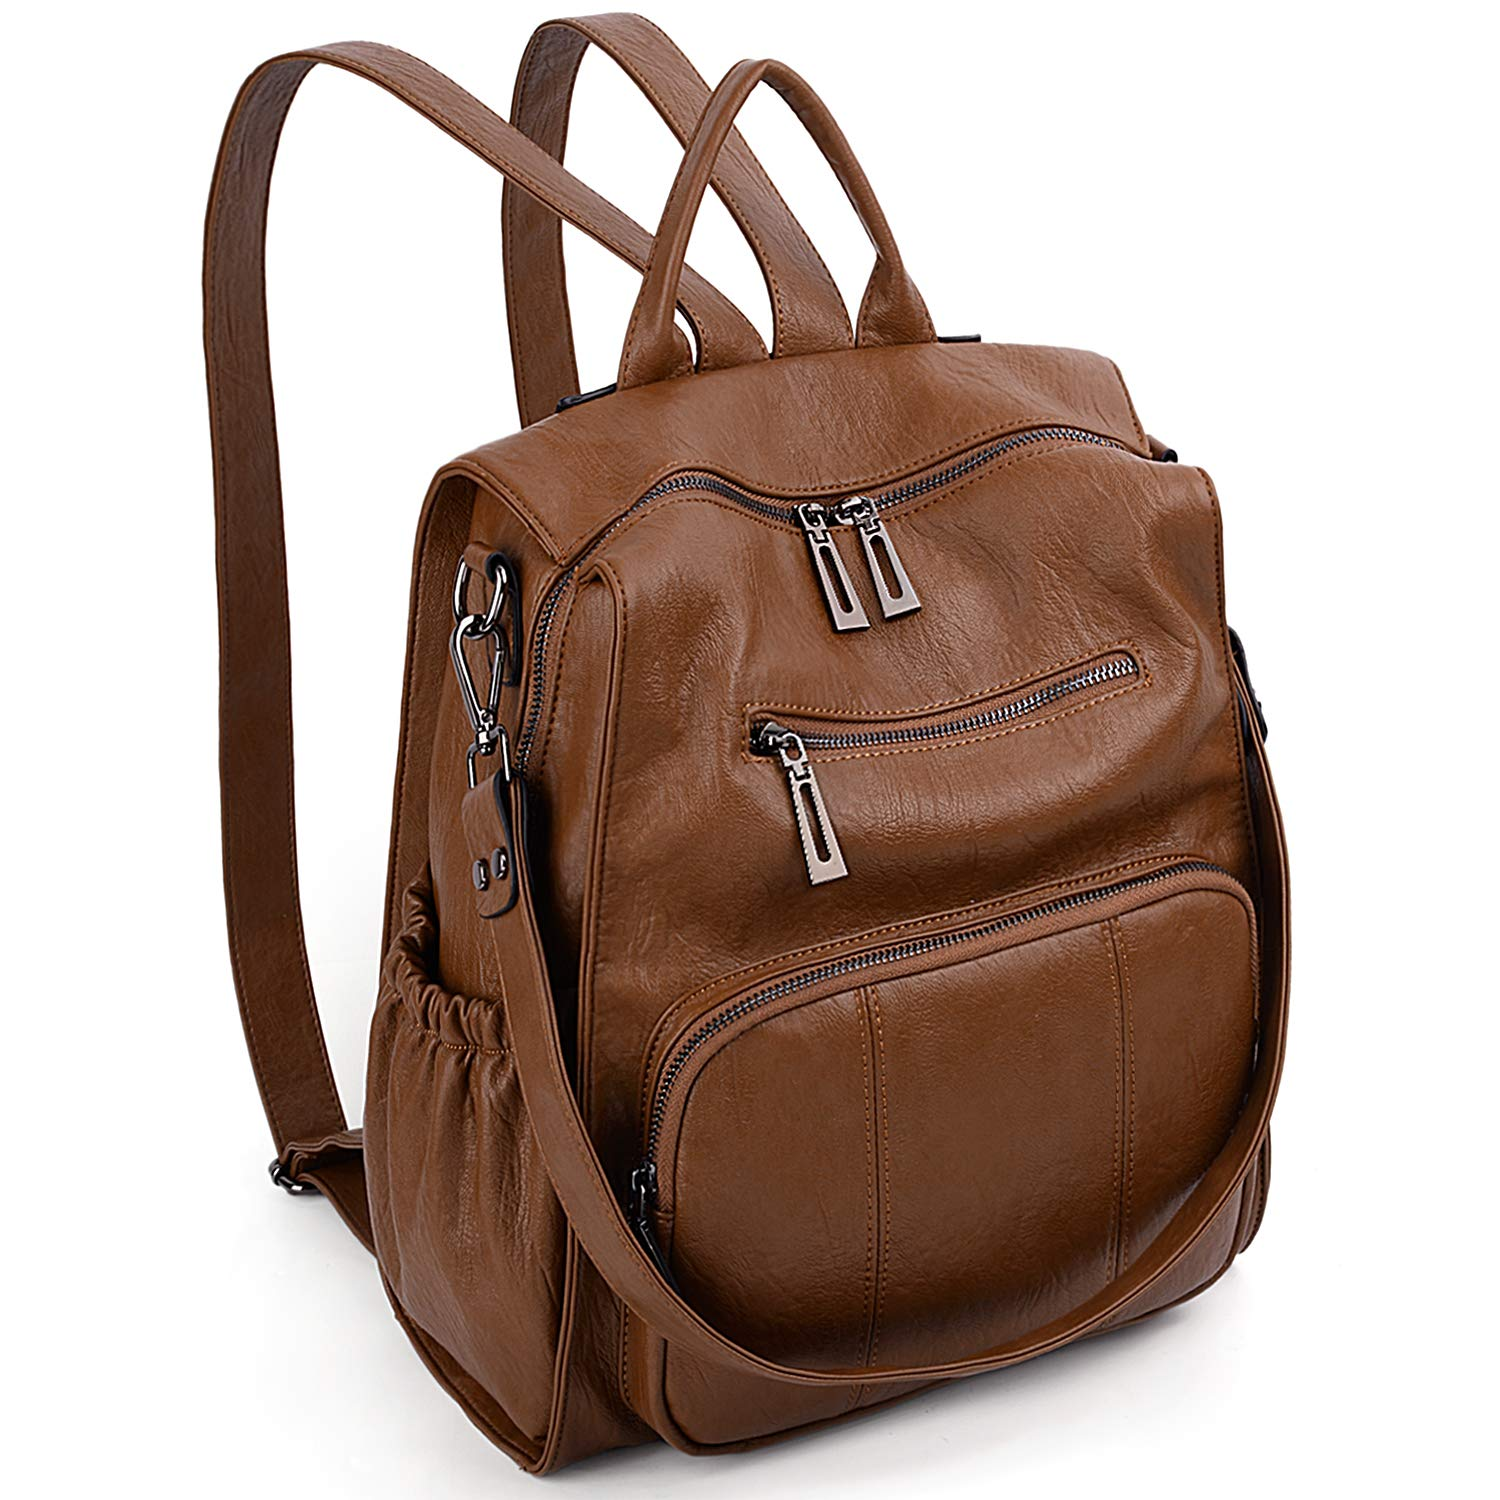 Women Backpack Purse UTO PU Leather Ladies Rucksack Convertible Single Shoulder Tote Bag A Brown